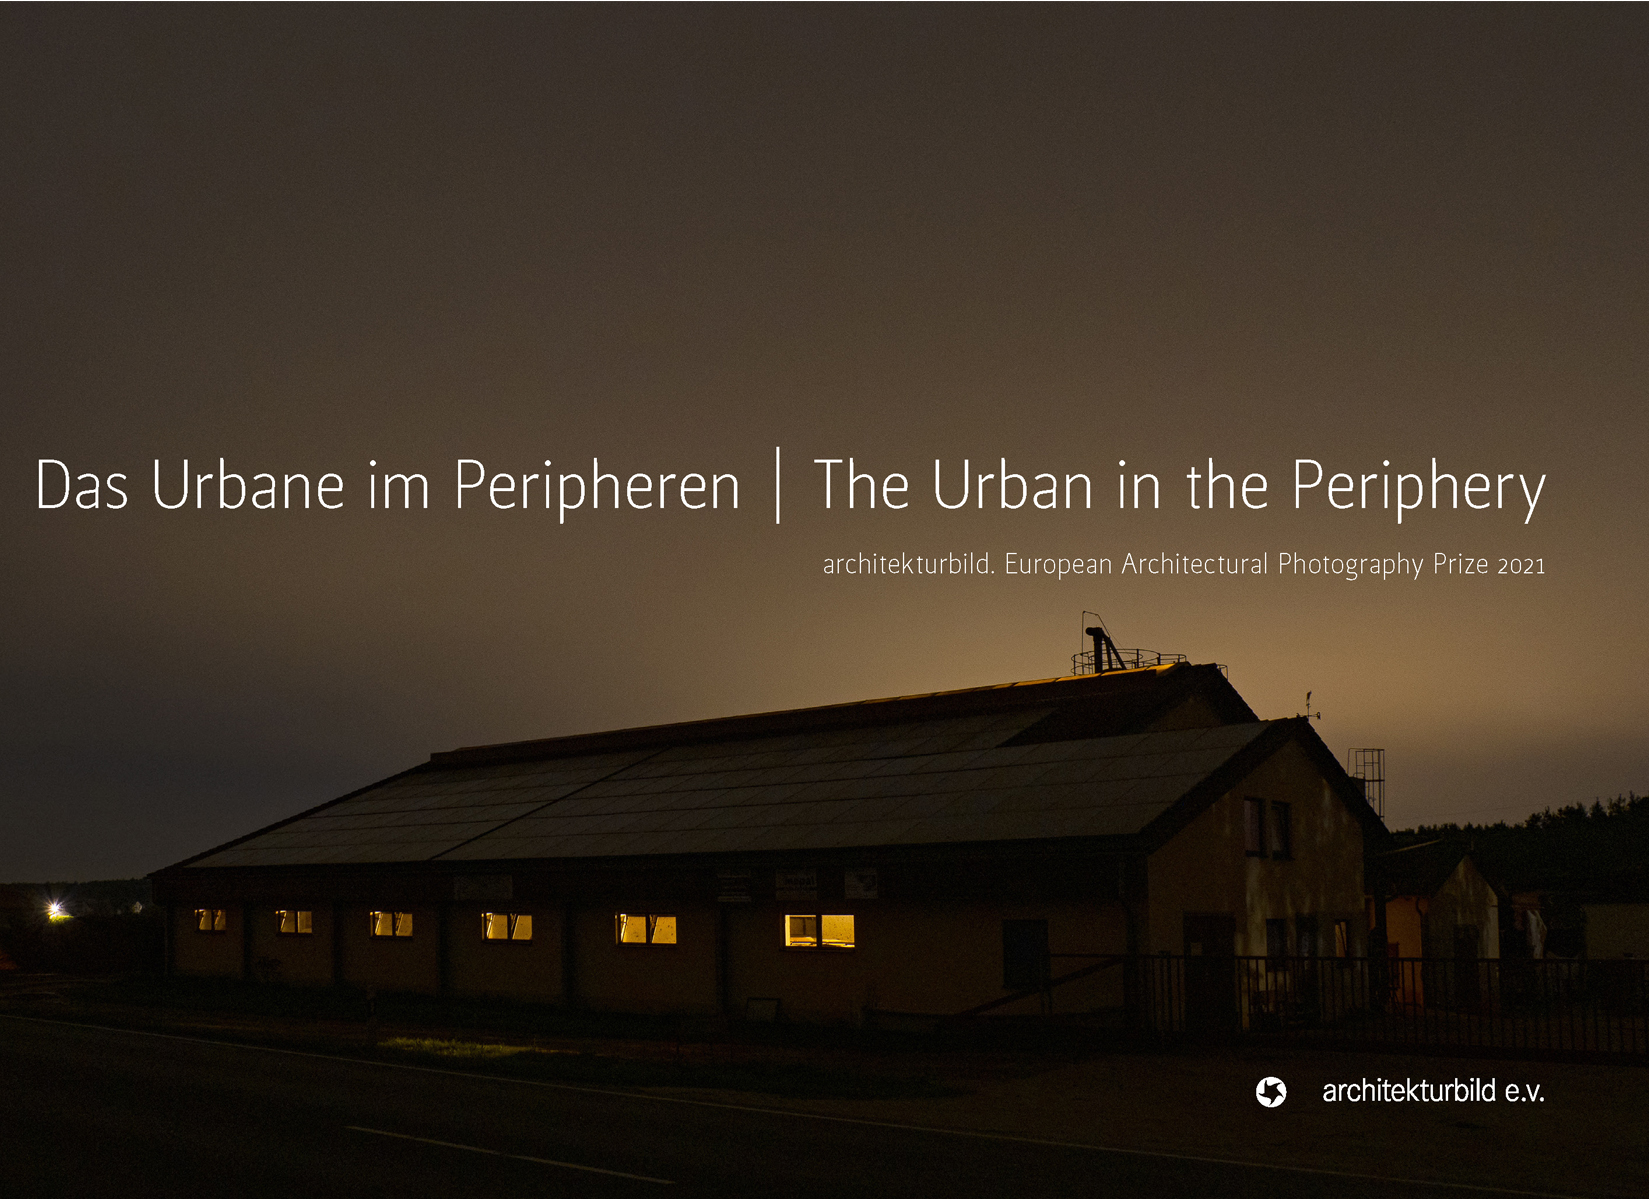 The Urban in the Periphery